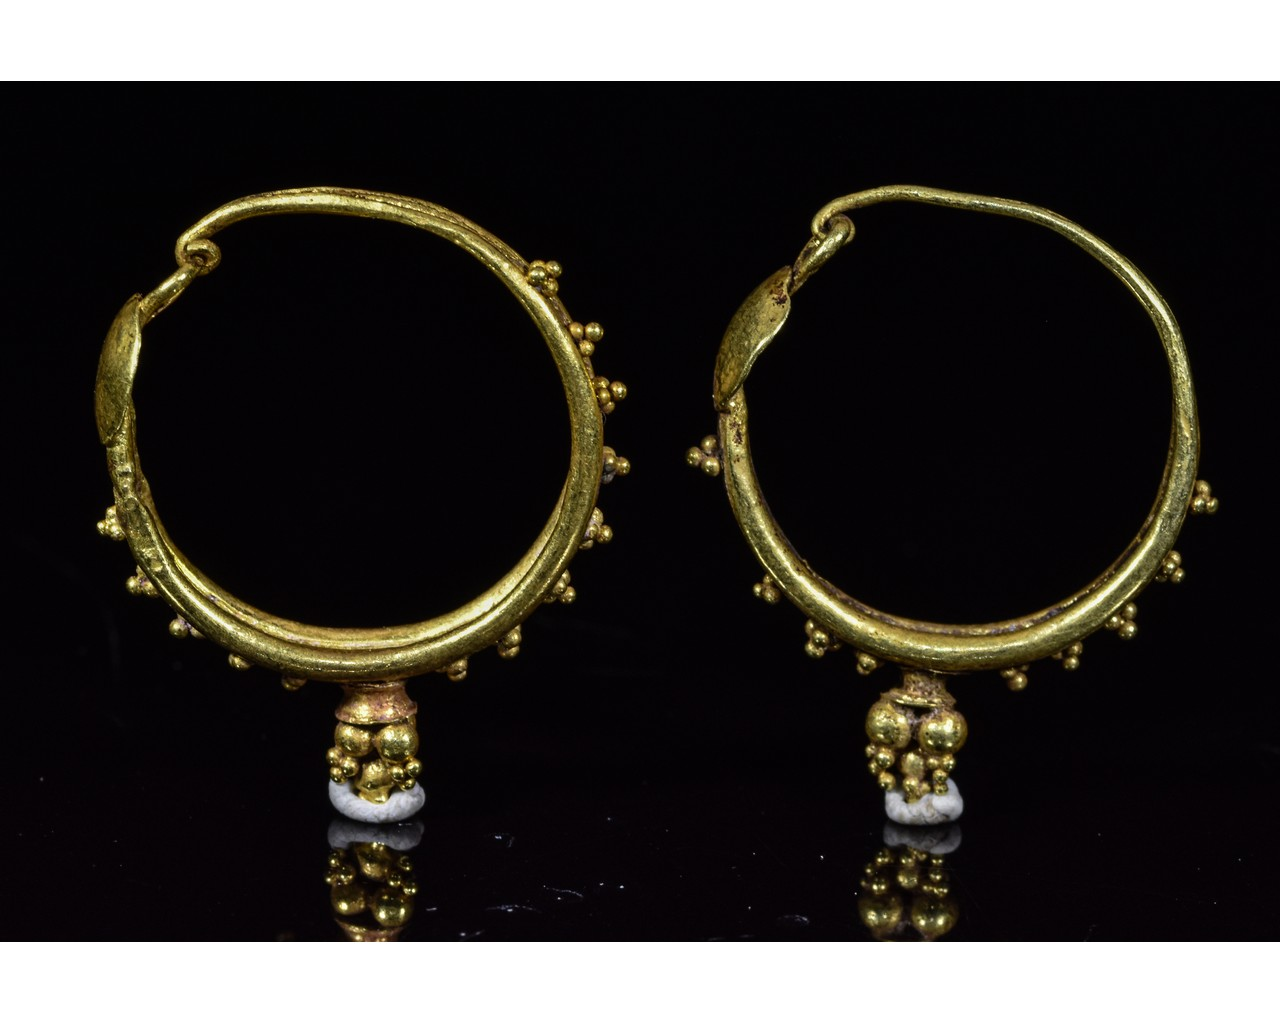 Lot 43 - ROMAN GOLD EARRINGS WITH GRANULATION